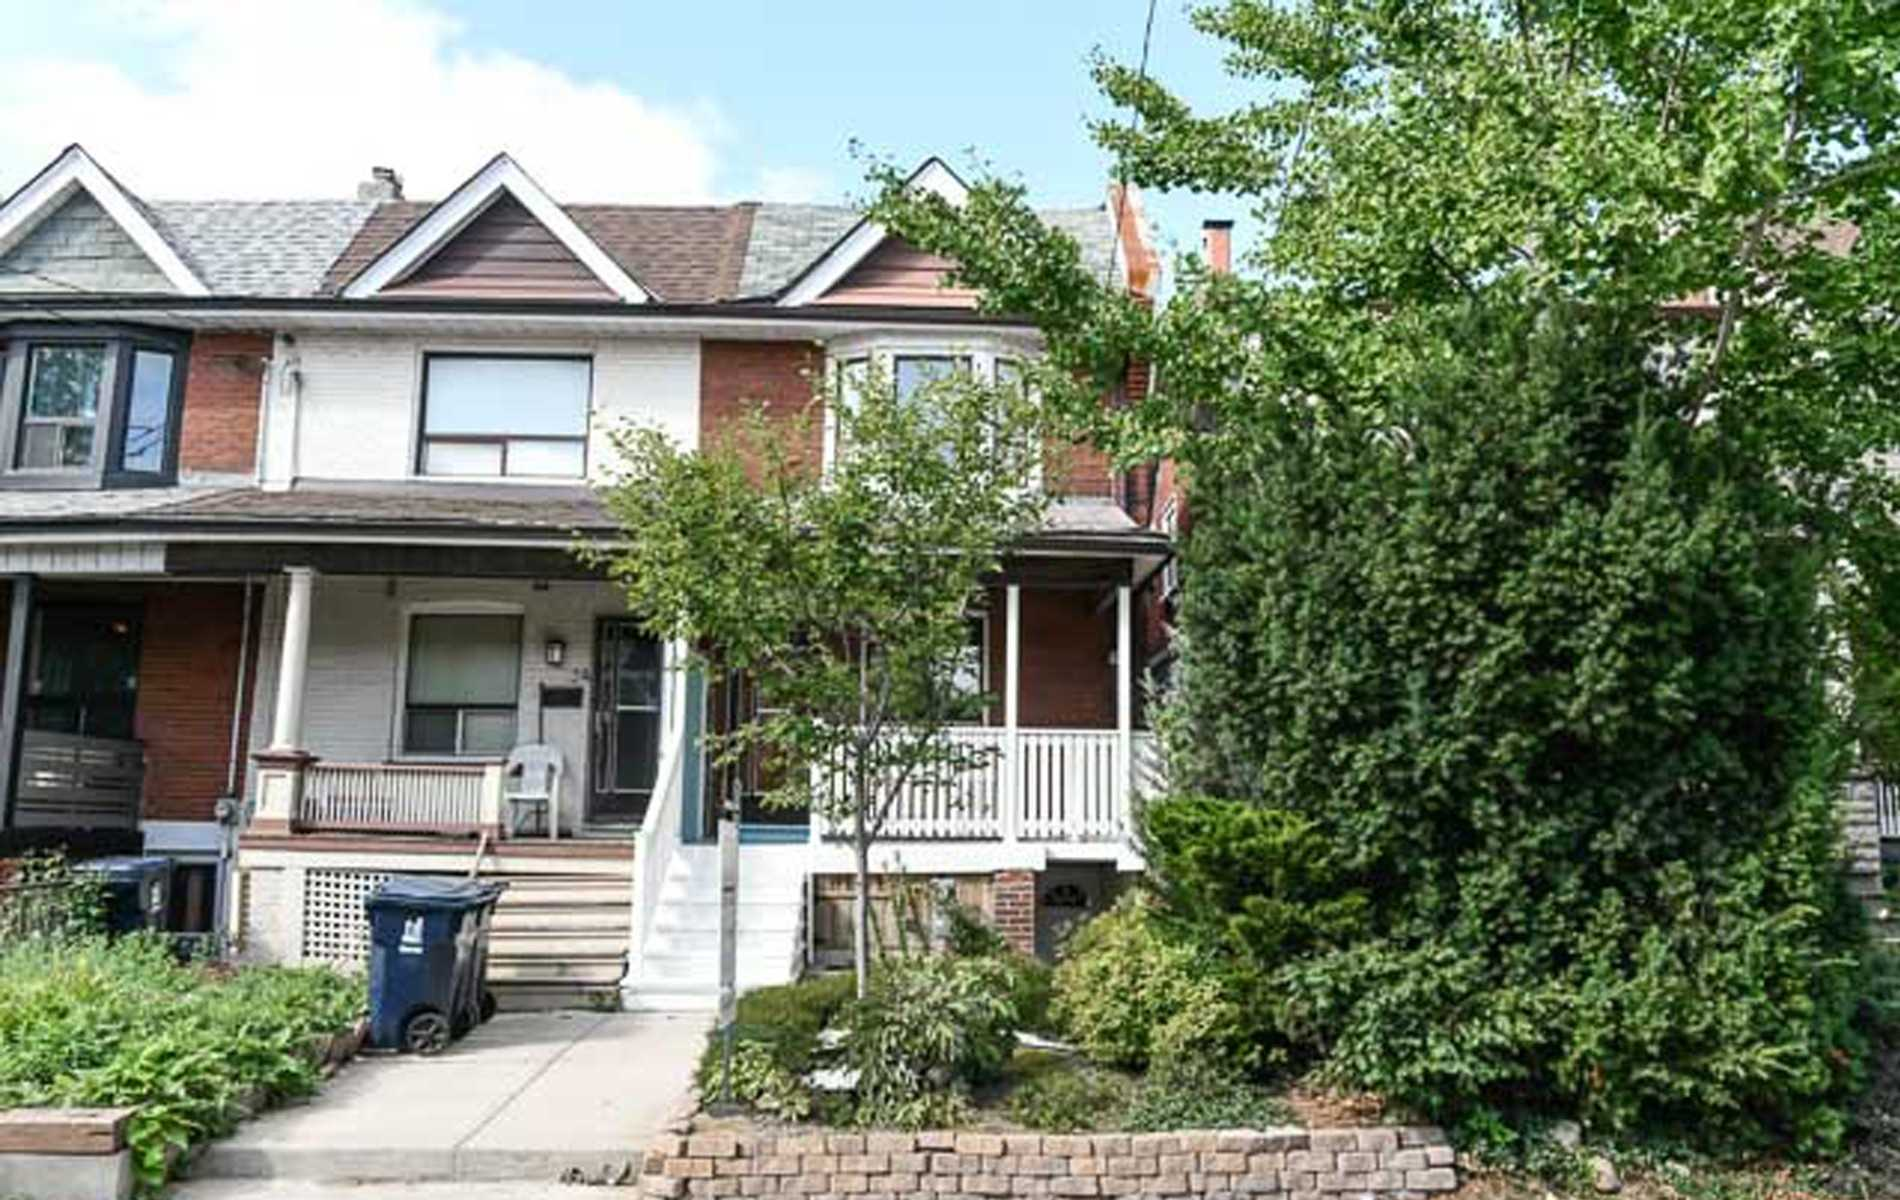 34A Somerset Ave, Toronto, Ontario M6H2R4, 3 Bedrooms Bedrooms, 7 Rooms Rooms,3 BathroomsBathrooms,Att/row/twnhouse,For Sale,Somerset,C4915371